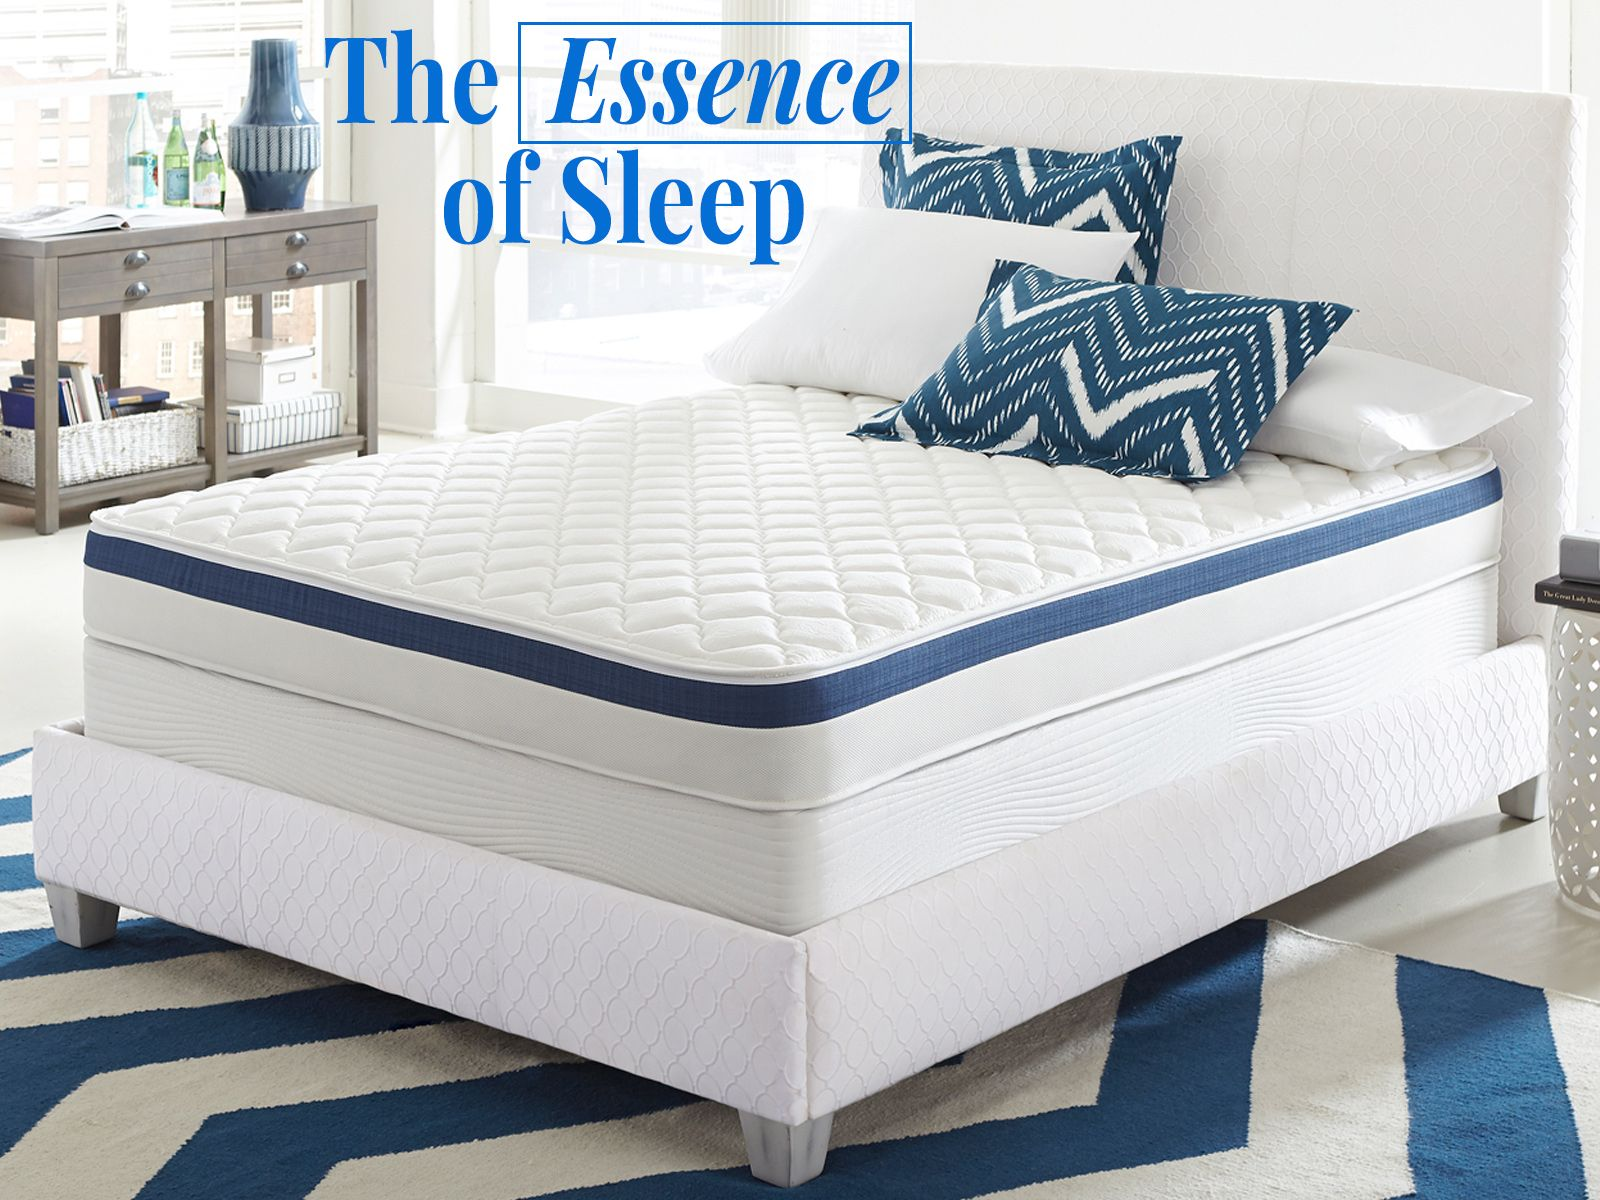 Our G10 mattress will put you to sleep in no time. But in